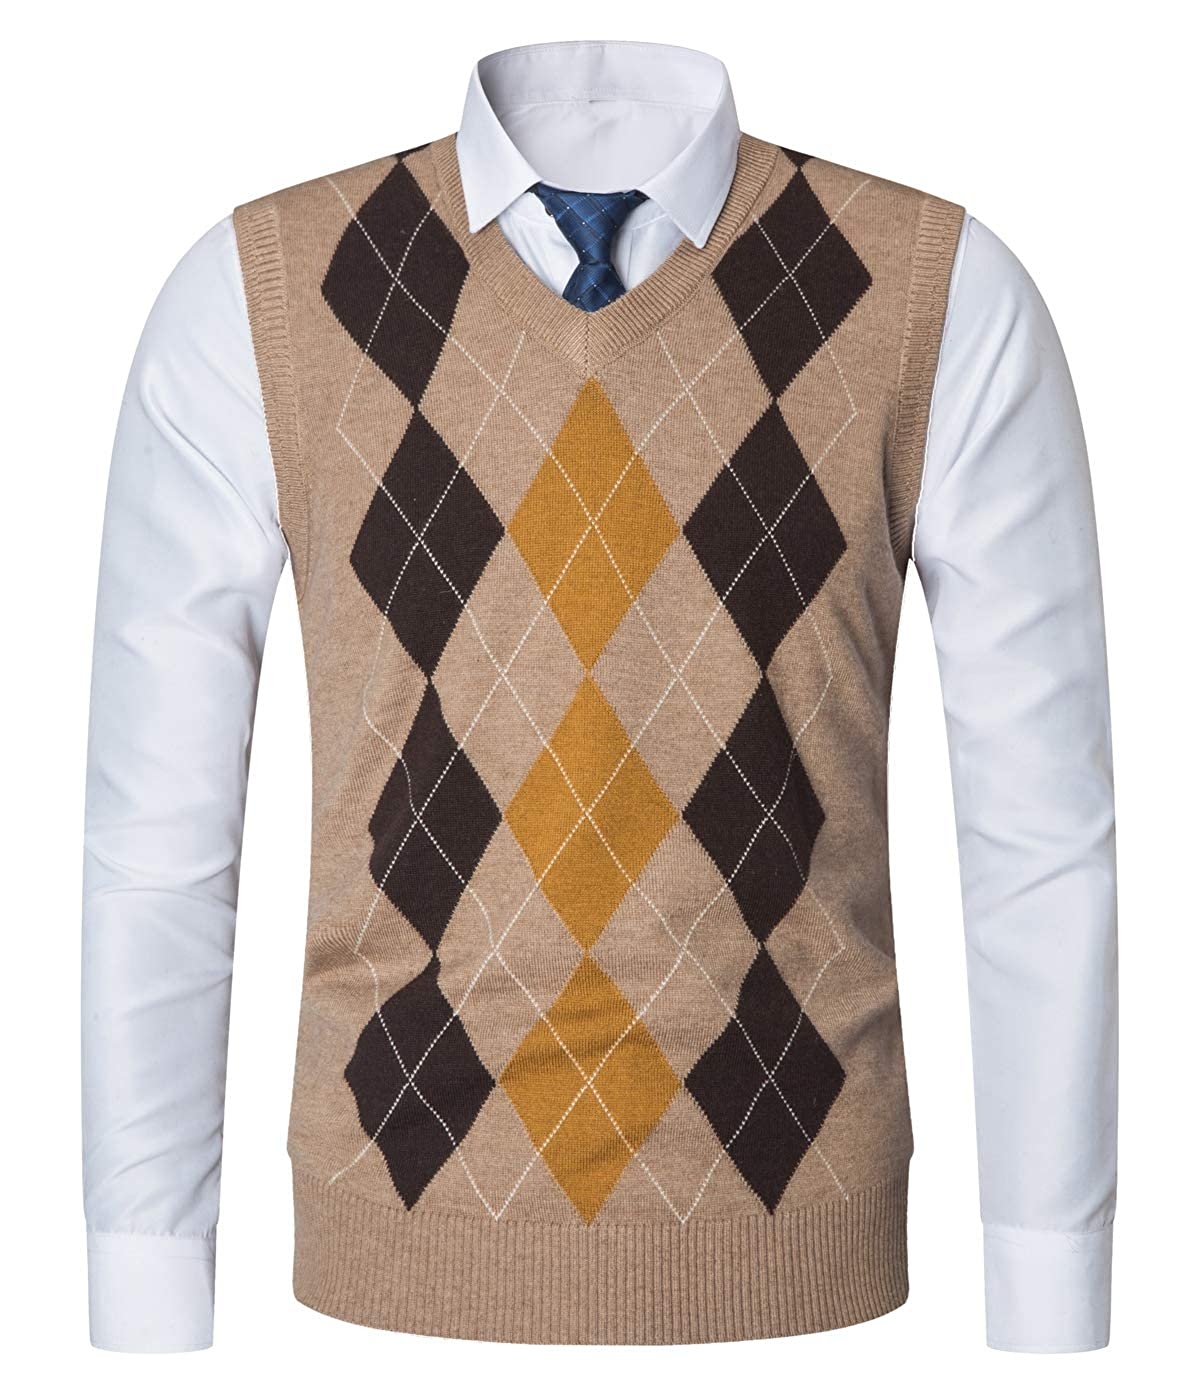 Yingqible Mens Casual Knitwear V-Neck Sleeveless Slim Fit Argyle Pullover Knitted Sweater Vest